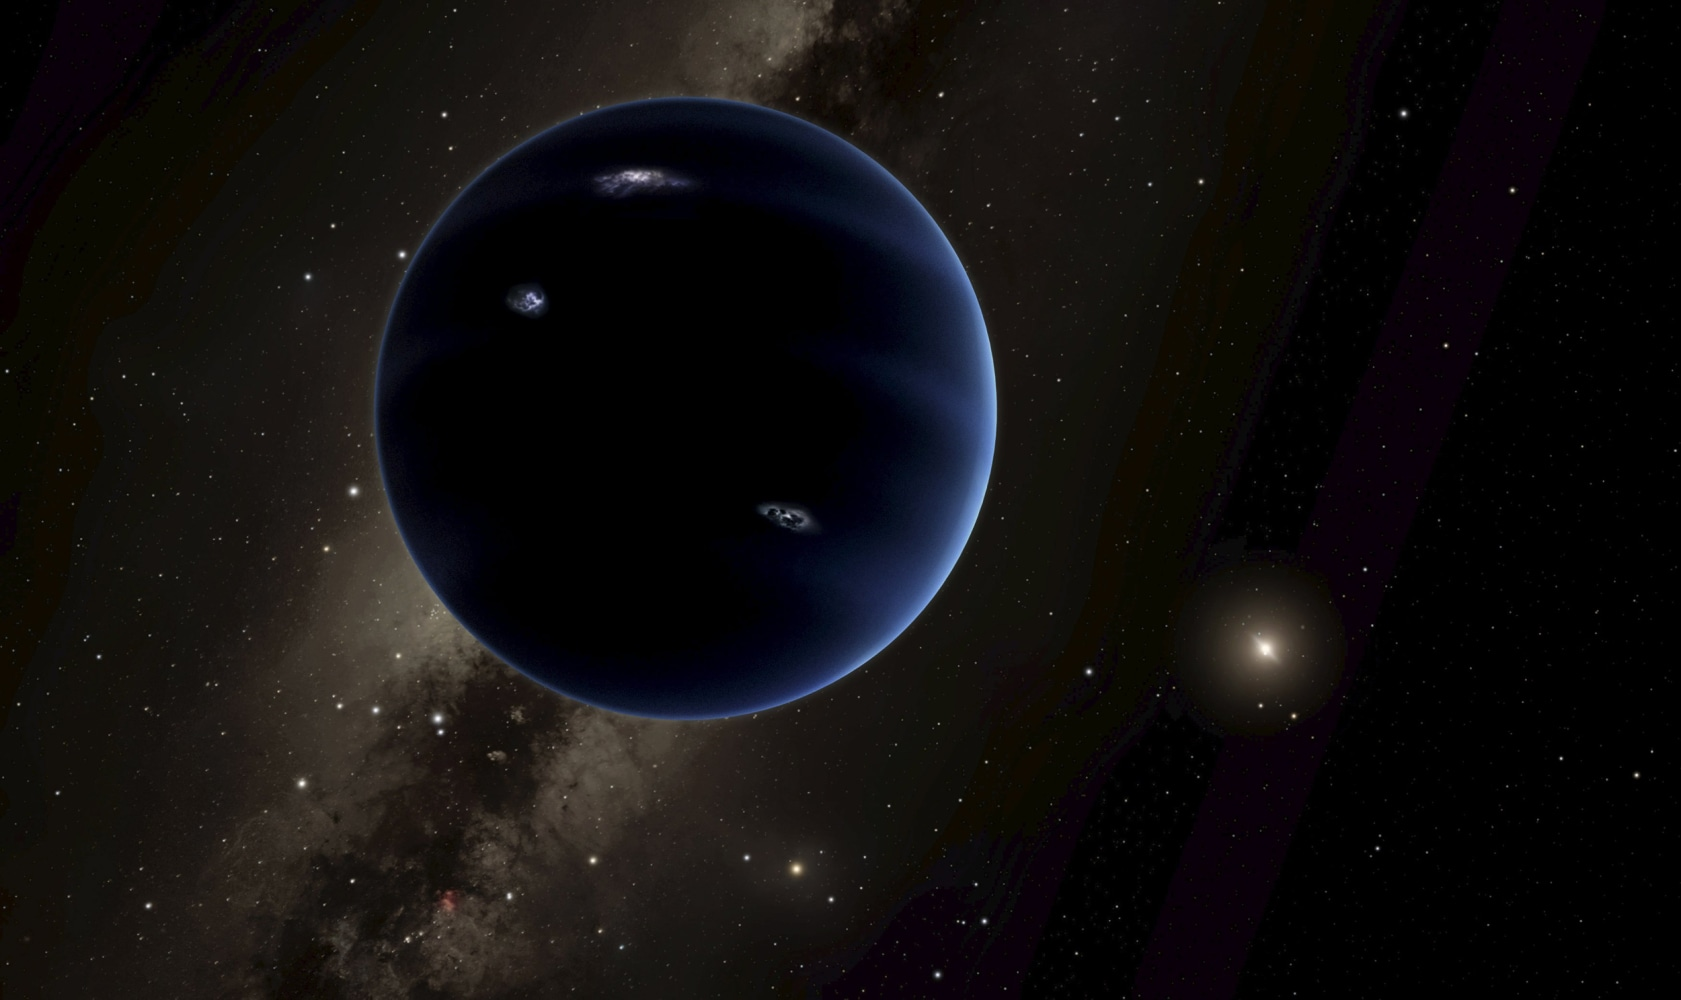 ESO Discovers Earth-Size Planet in Habitable Zone of Nearest Star ...